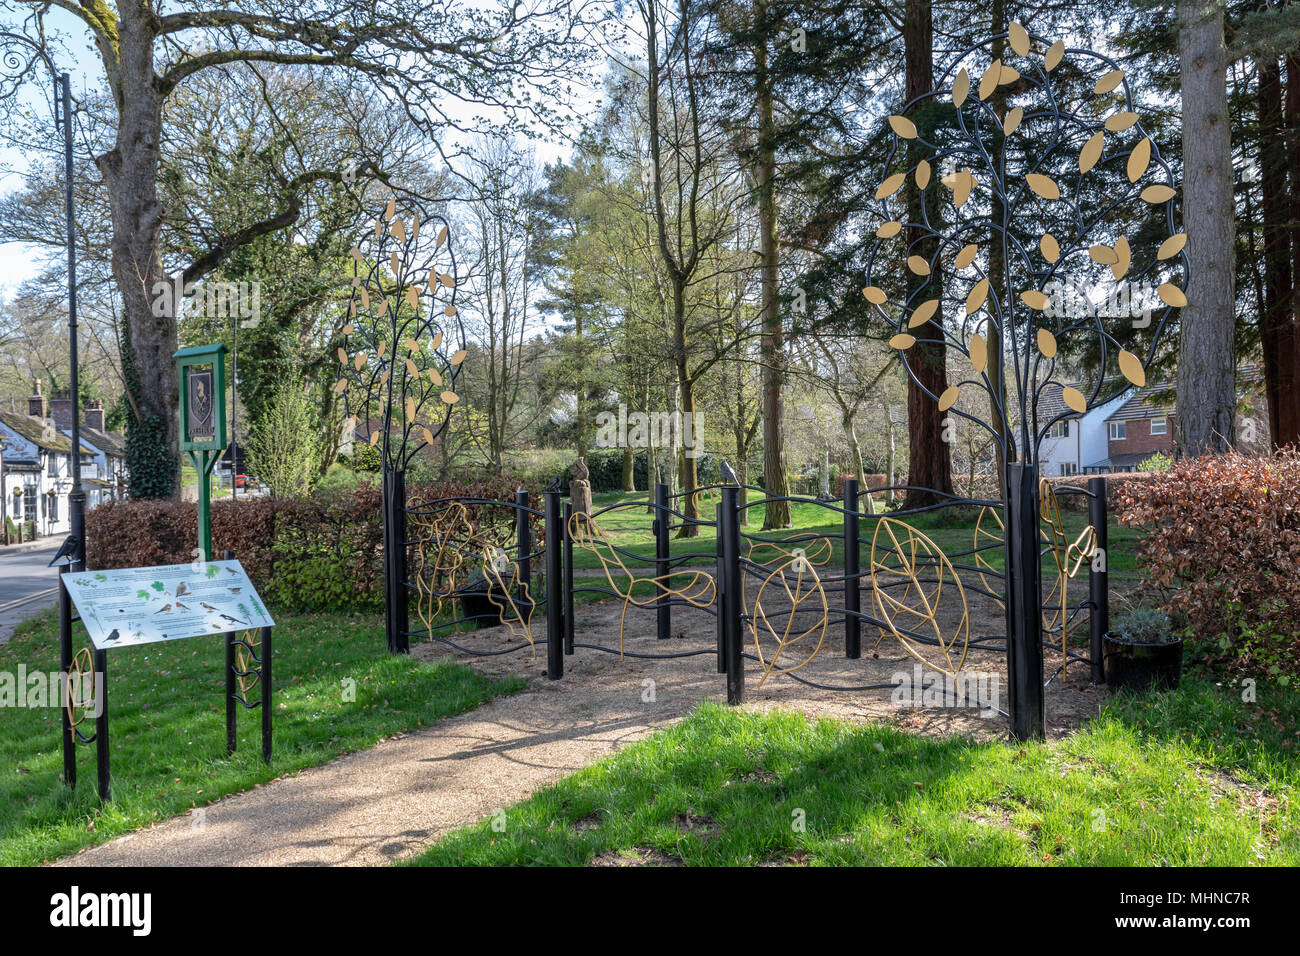 Prestbury Cheshire village green and open space - Stock Image